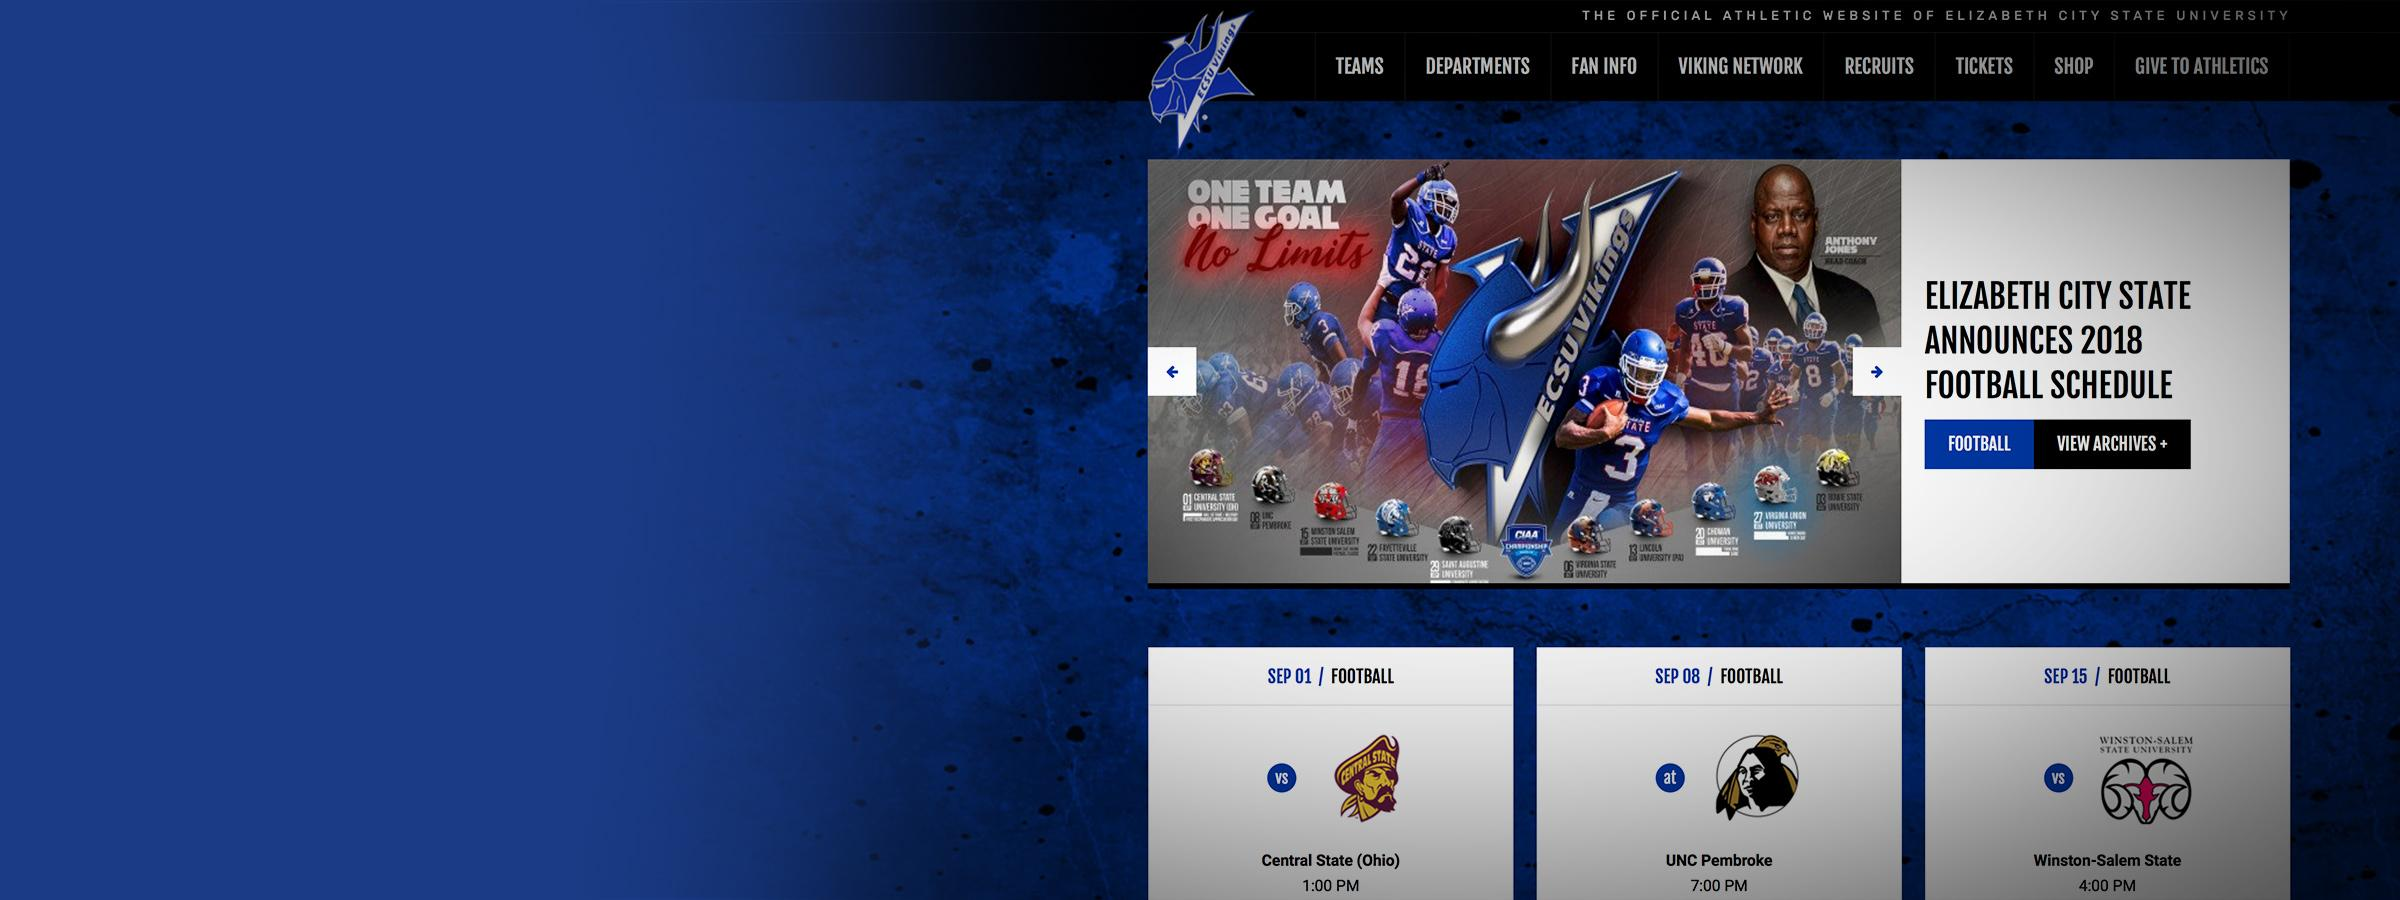 New ECSU Athletics Website